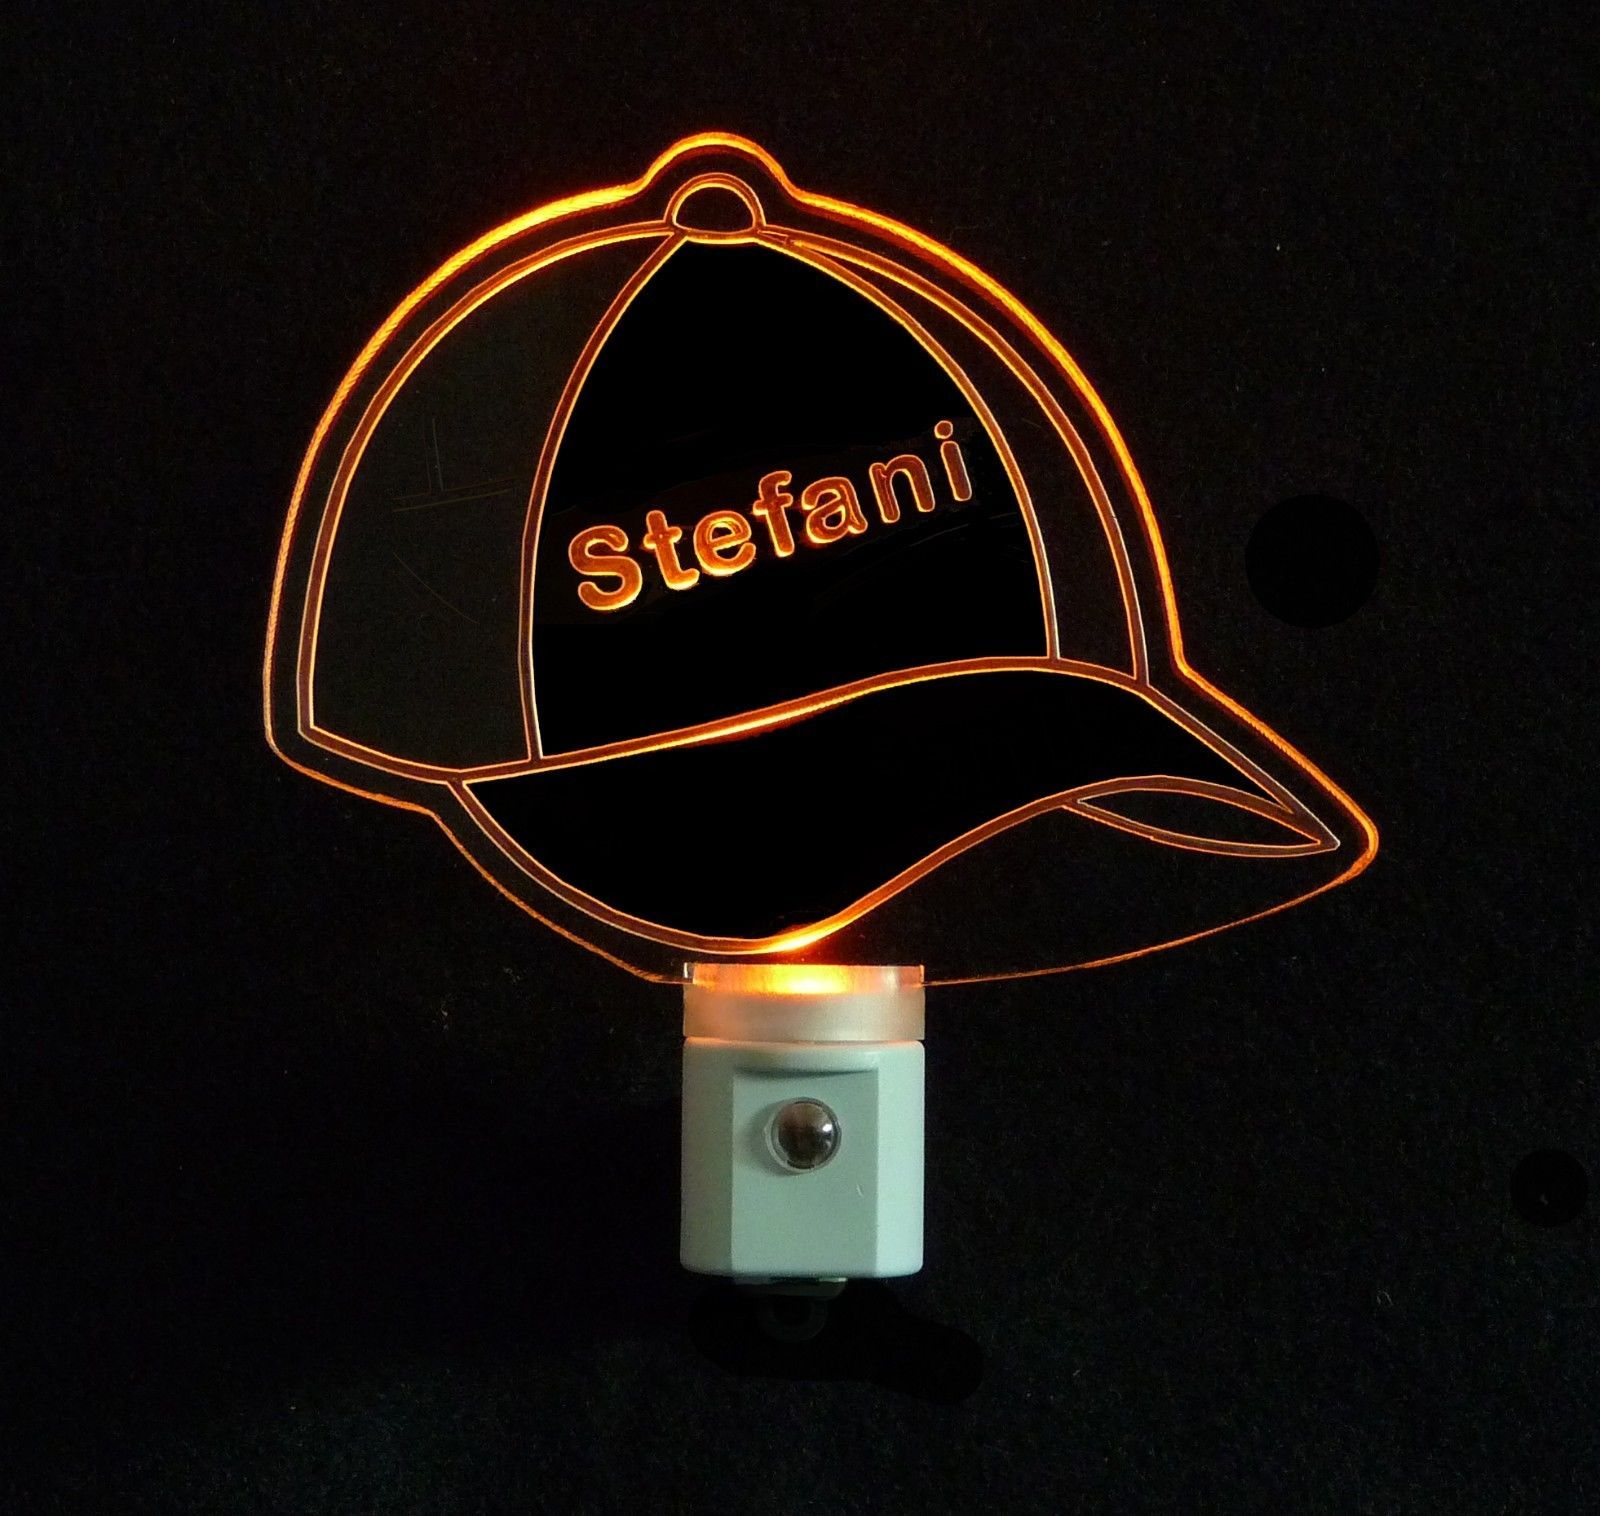 Personalizd Baseball Cap LED Night Light and similar items